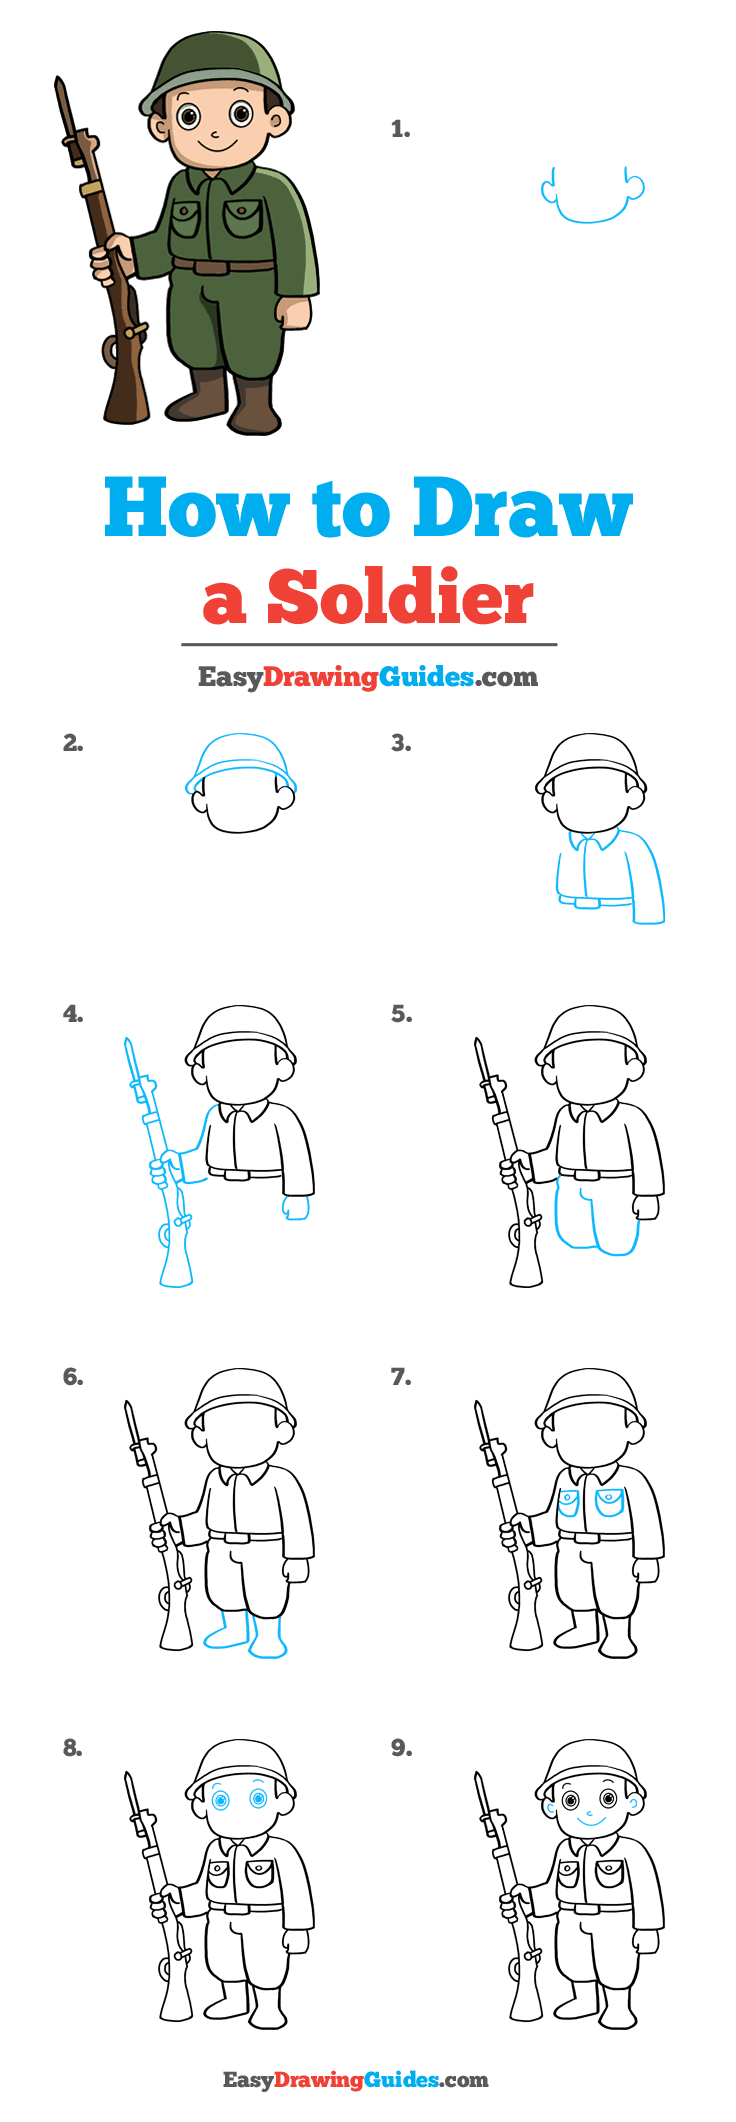 How to Draw a Soldier Step by Step Image Tutorial